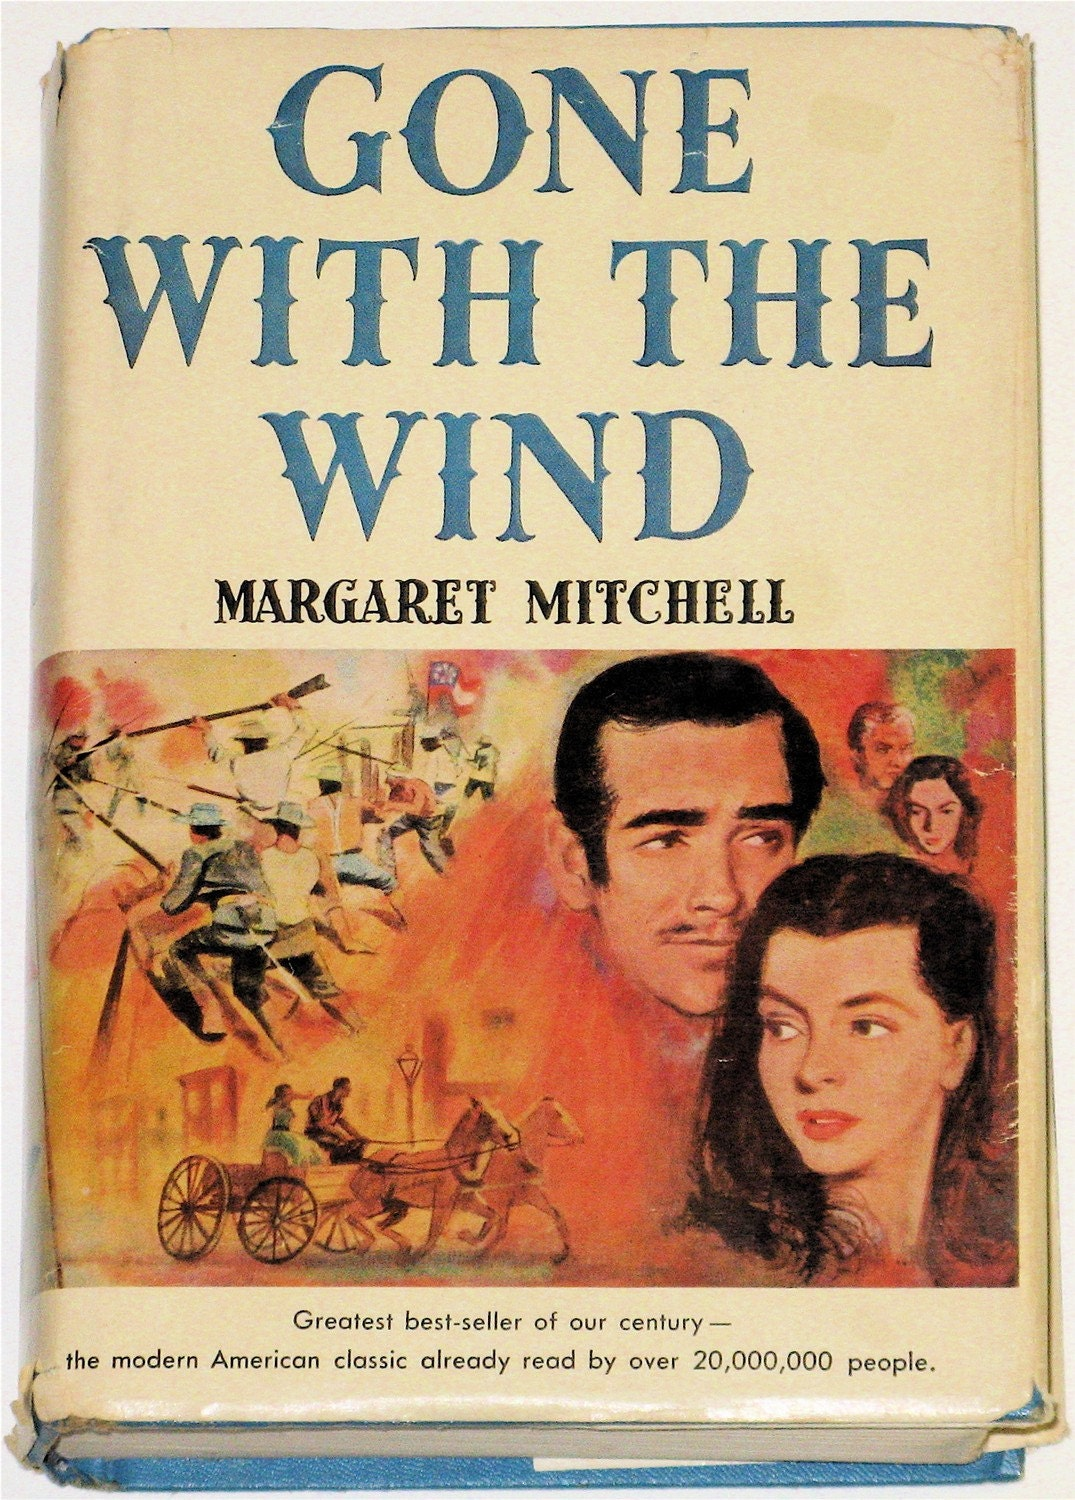 Sequel book to gone with the wind